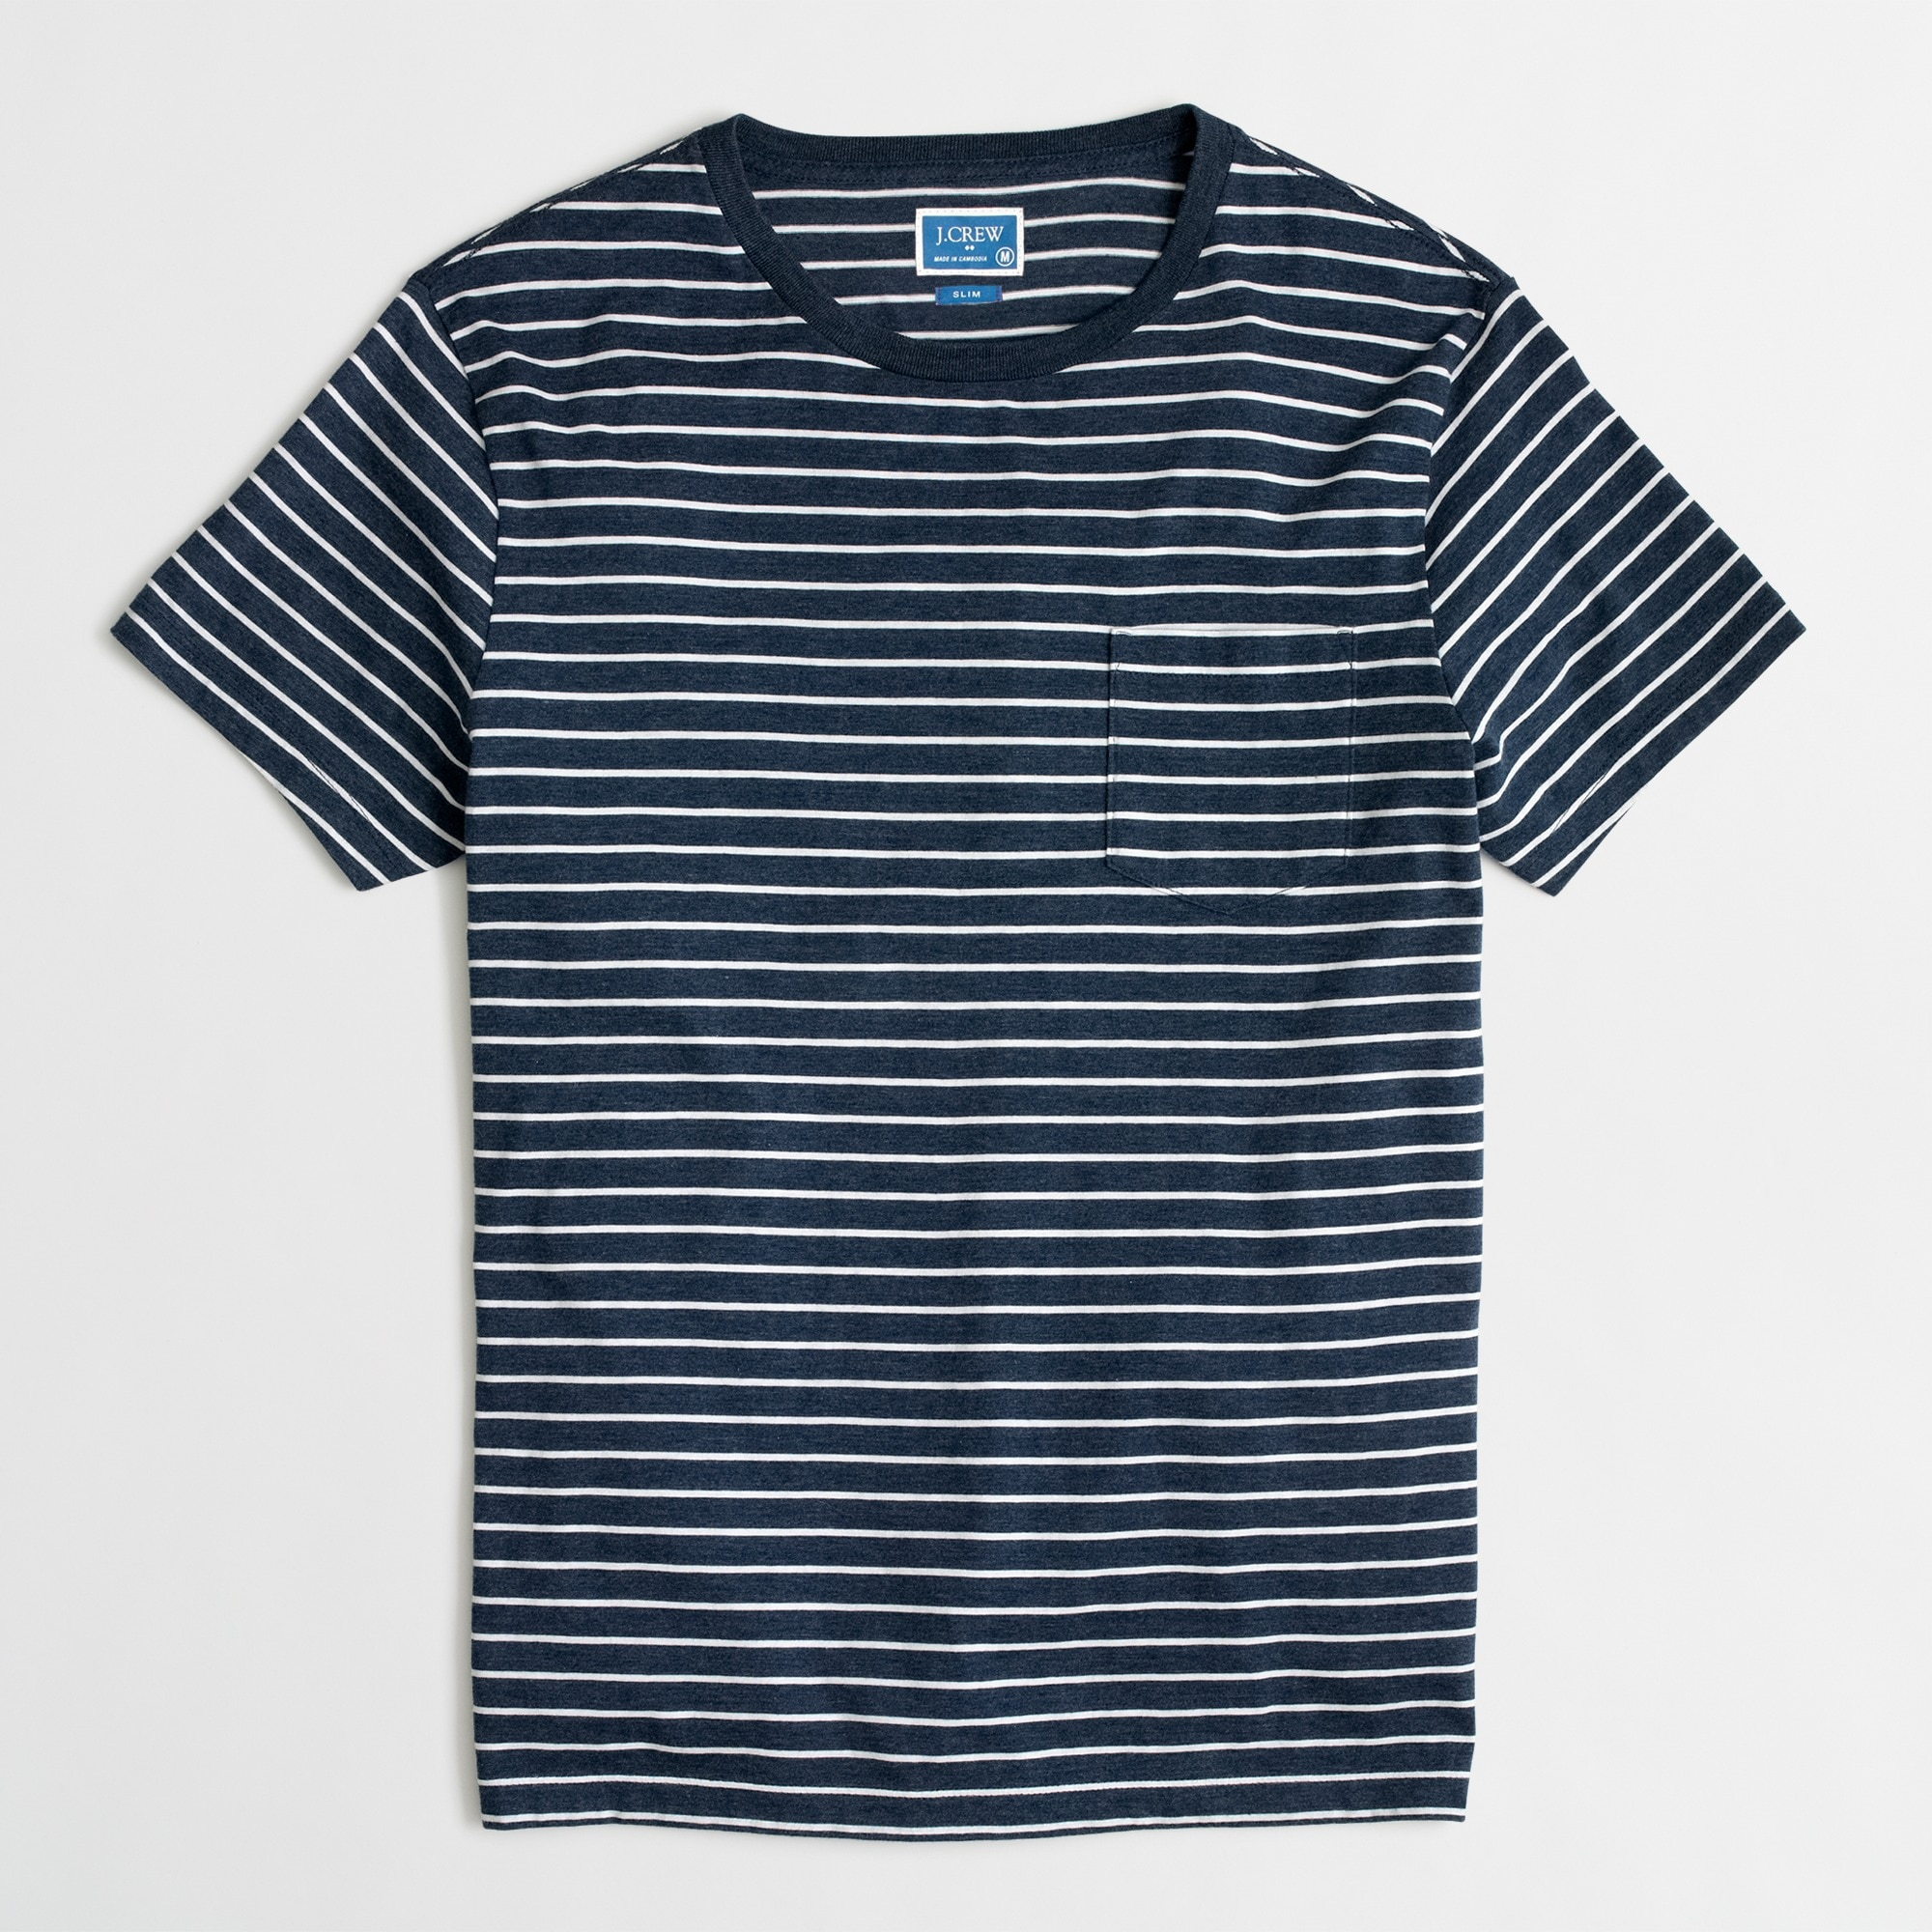 Image 2 for J.Crew Mercantile tall slim Broken-in striped pocket T-shirt